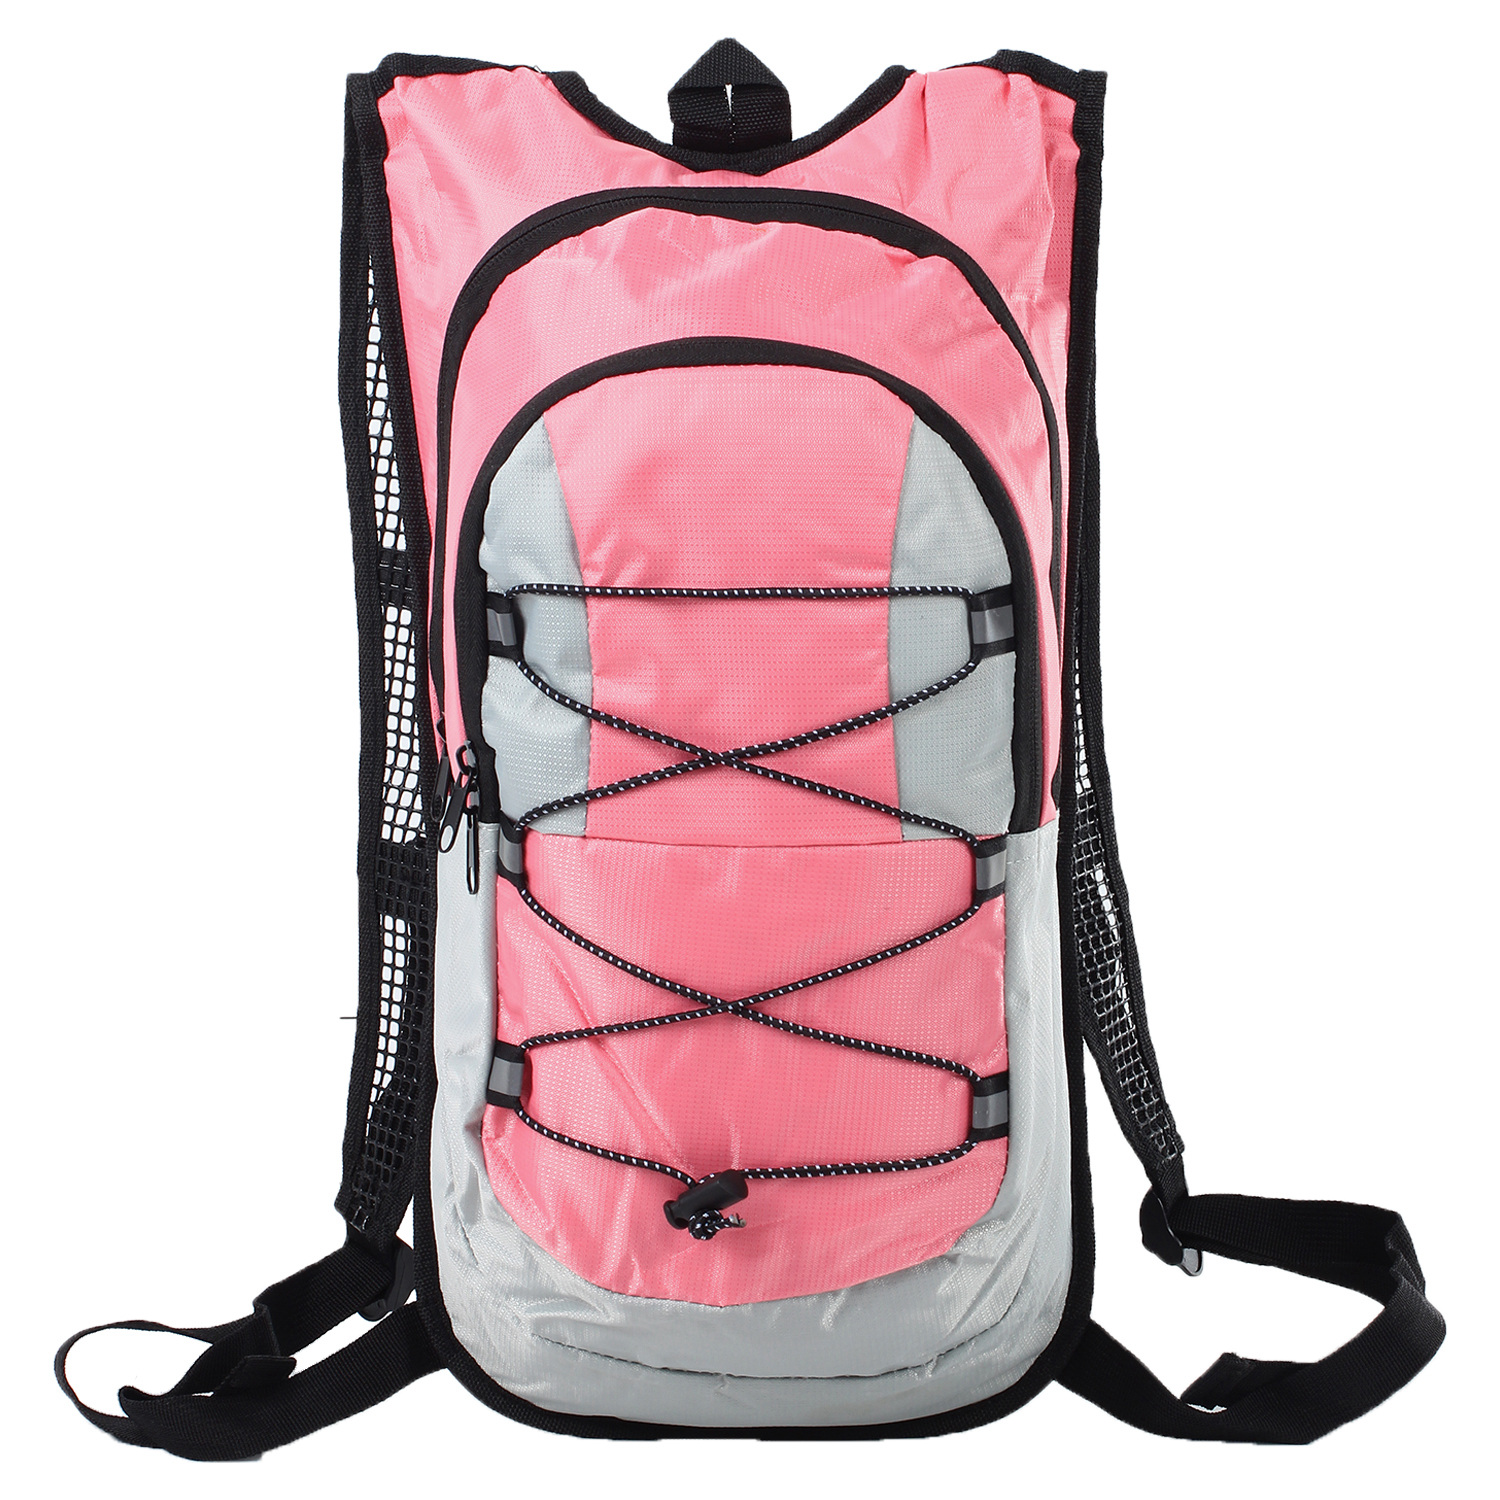 Abdb 3 Color Unisex Backpack Rucksack Male Women Bag For Travel And Mountaineering Waterproof Ultralight